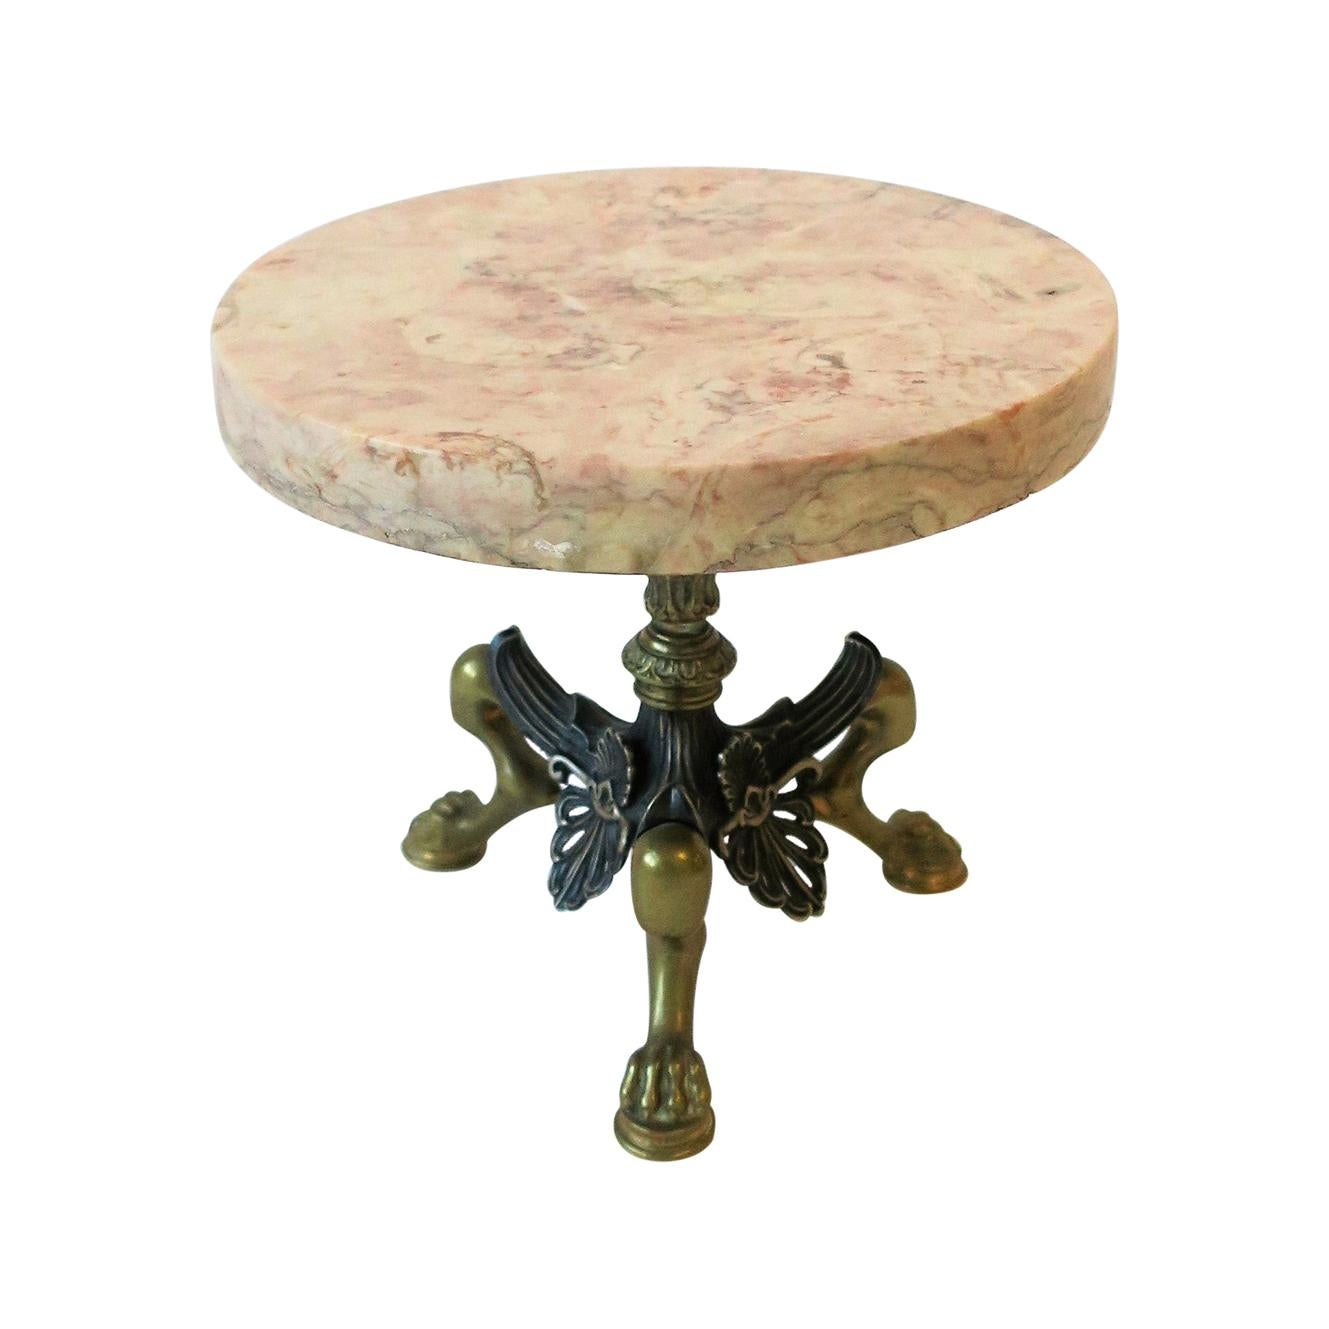 Marble and Brass Round Pedestal with Lion Paw Feet